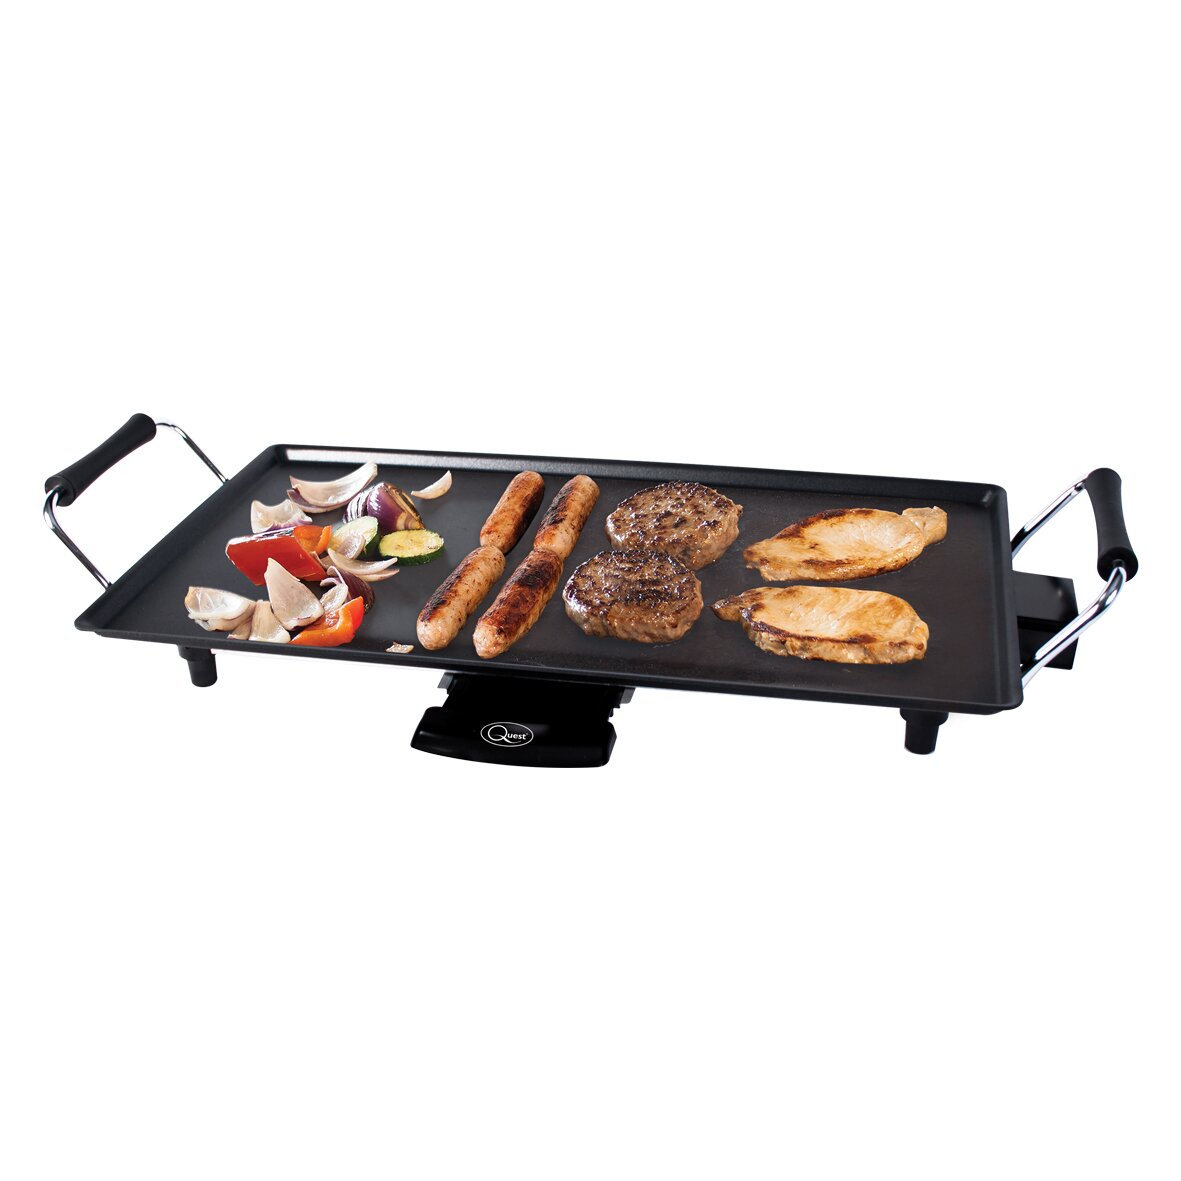 benross quest electric teppanyaki grill wayfair uk. Black Bedroom Furniture Sets. Home Design Ideas